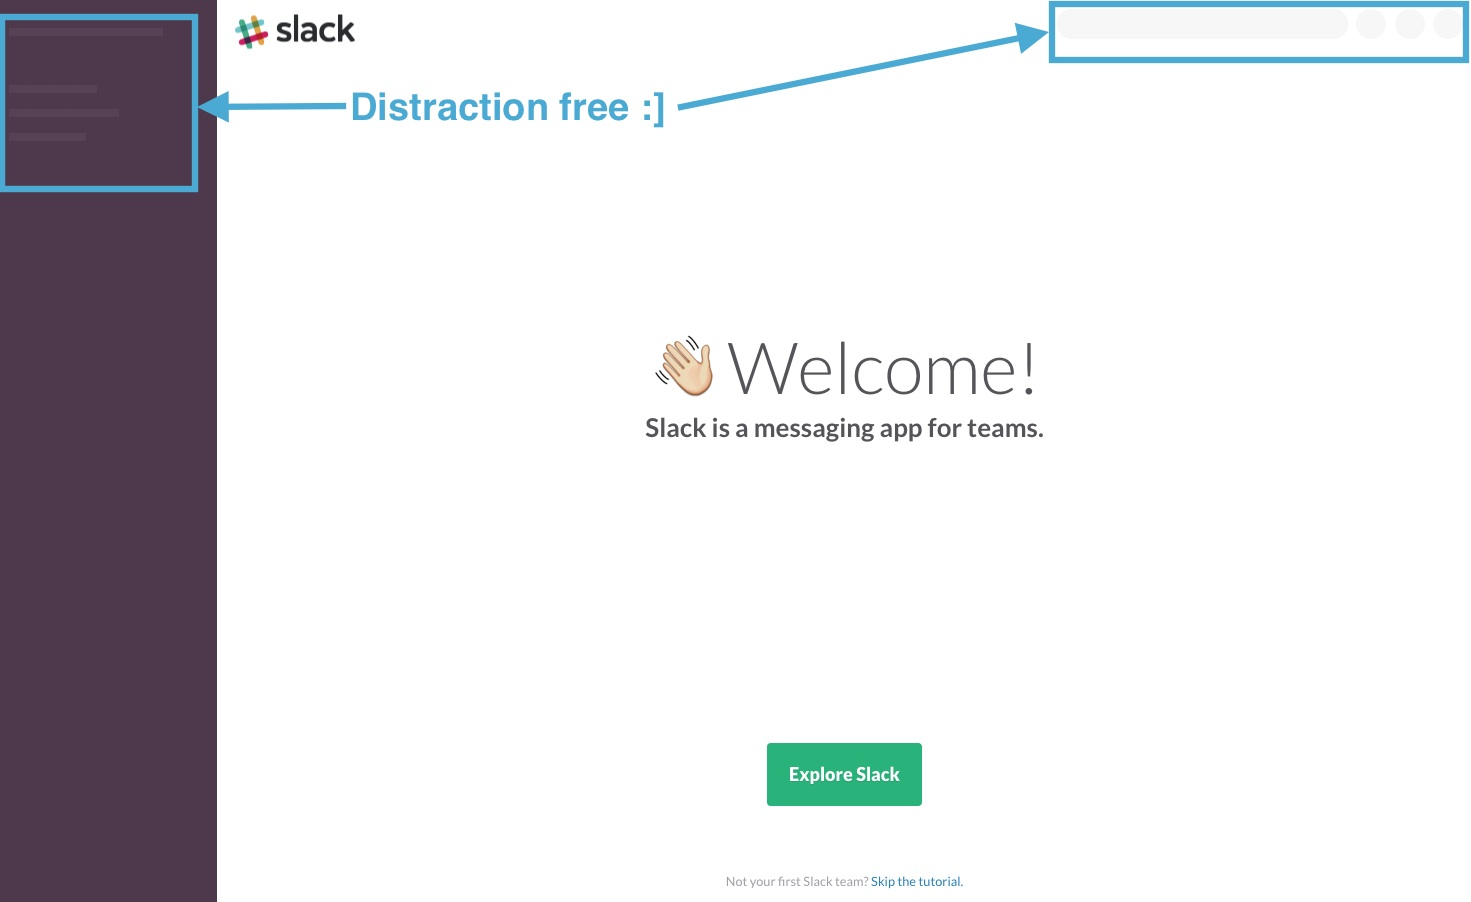 Slack new user onboarding welcome screen UX